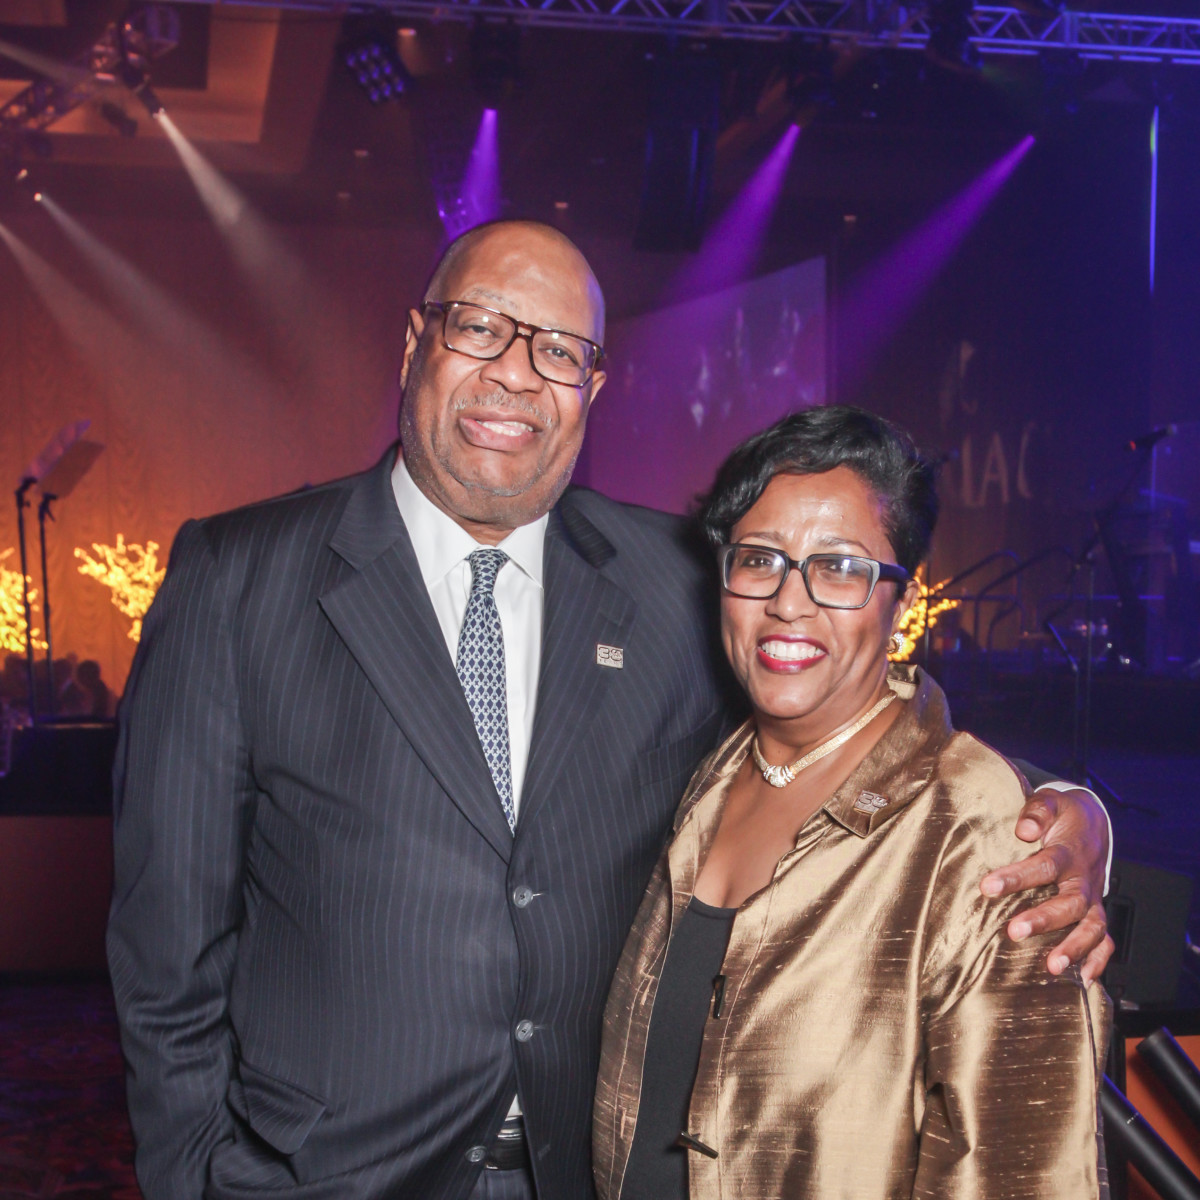 CAMAC 30th anny gala, Jan. 2016, Jodie Jiles, Sonny Messiah Jiles